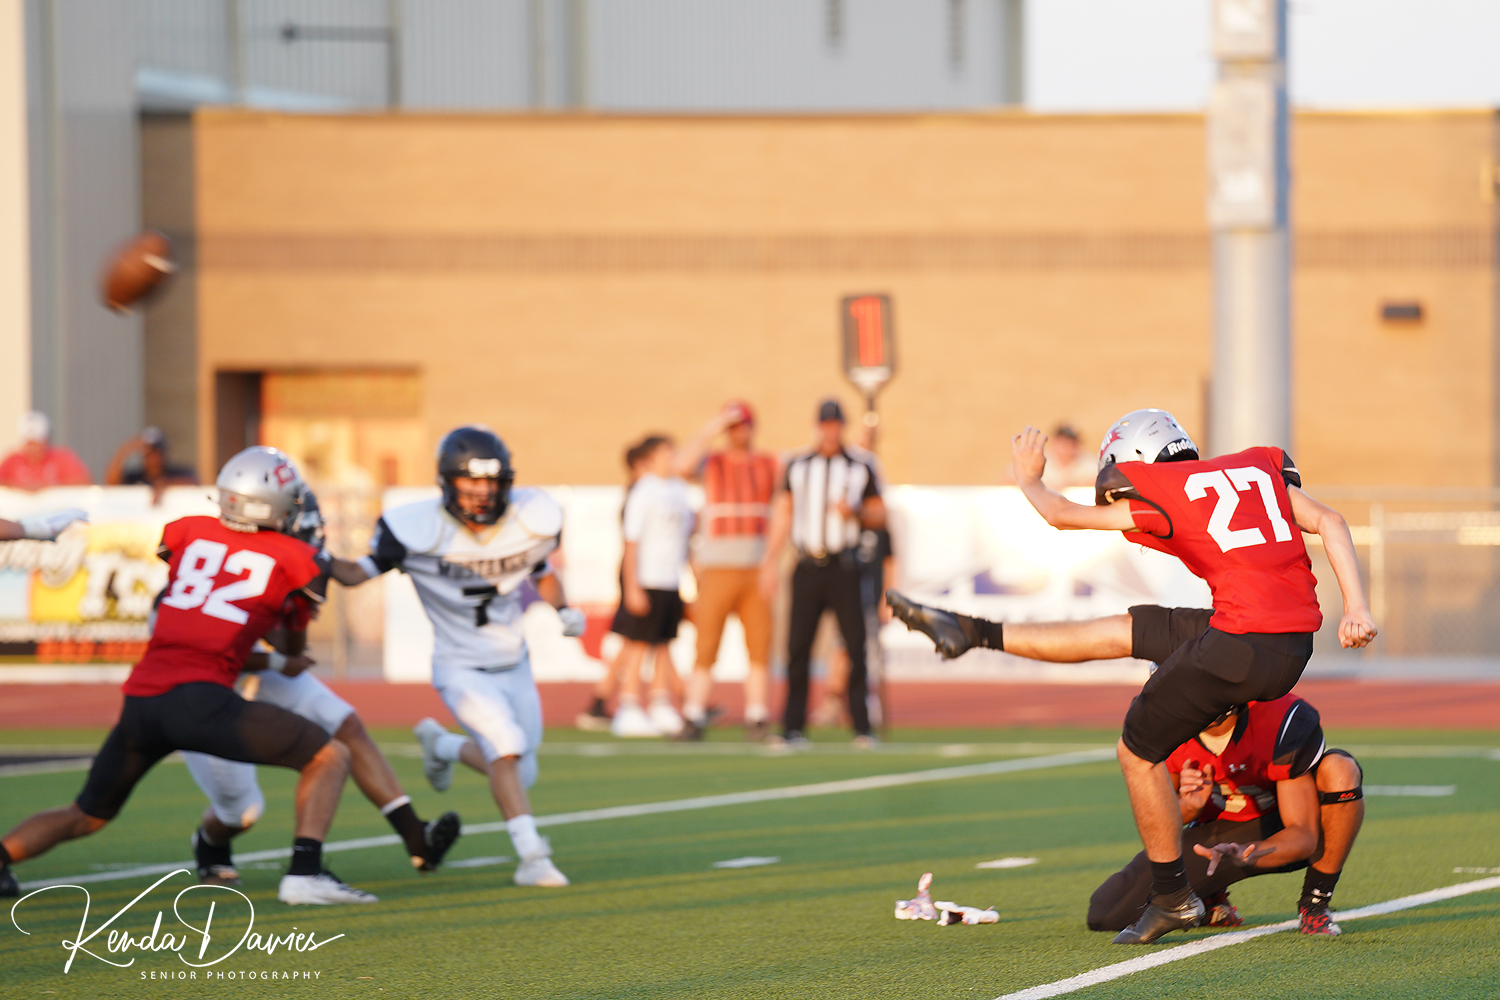 Senior kicker, Brock Thompson puts a PAT on the board late in the second half.